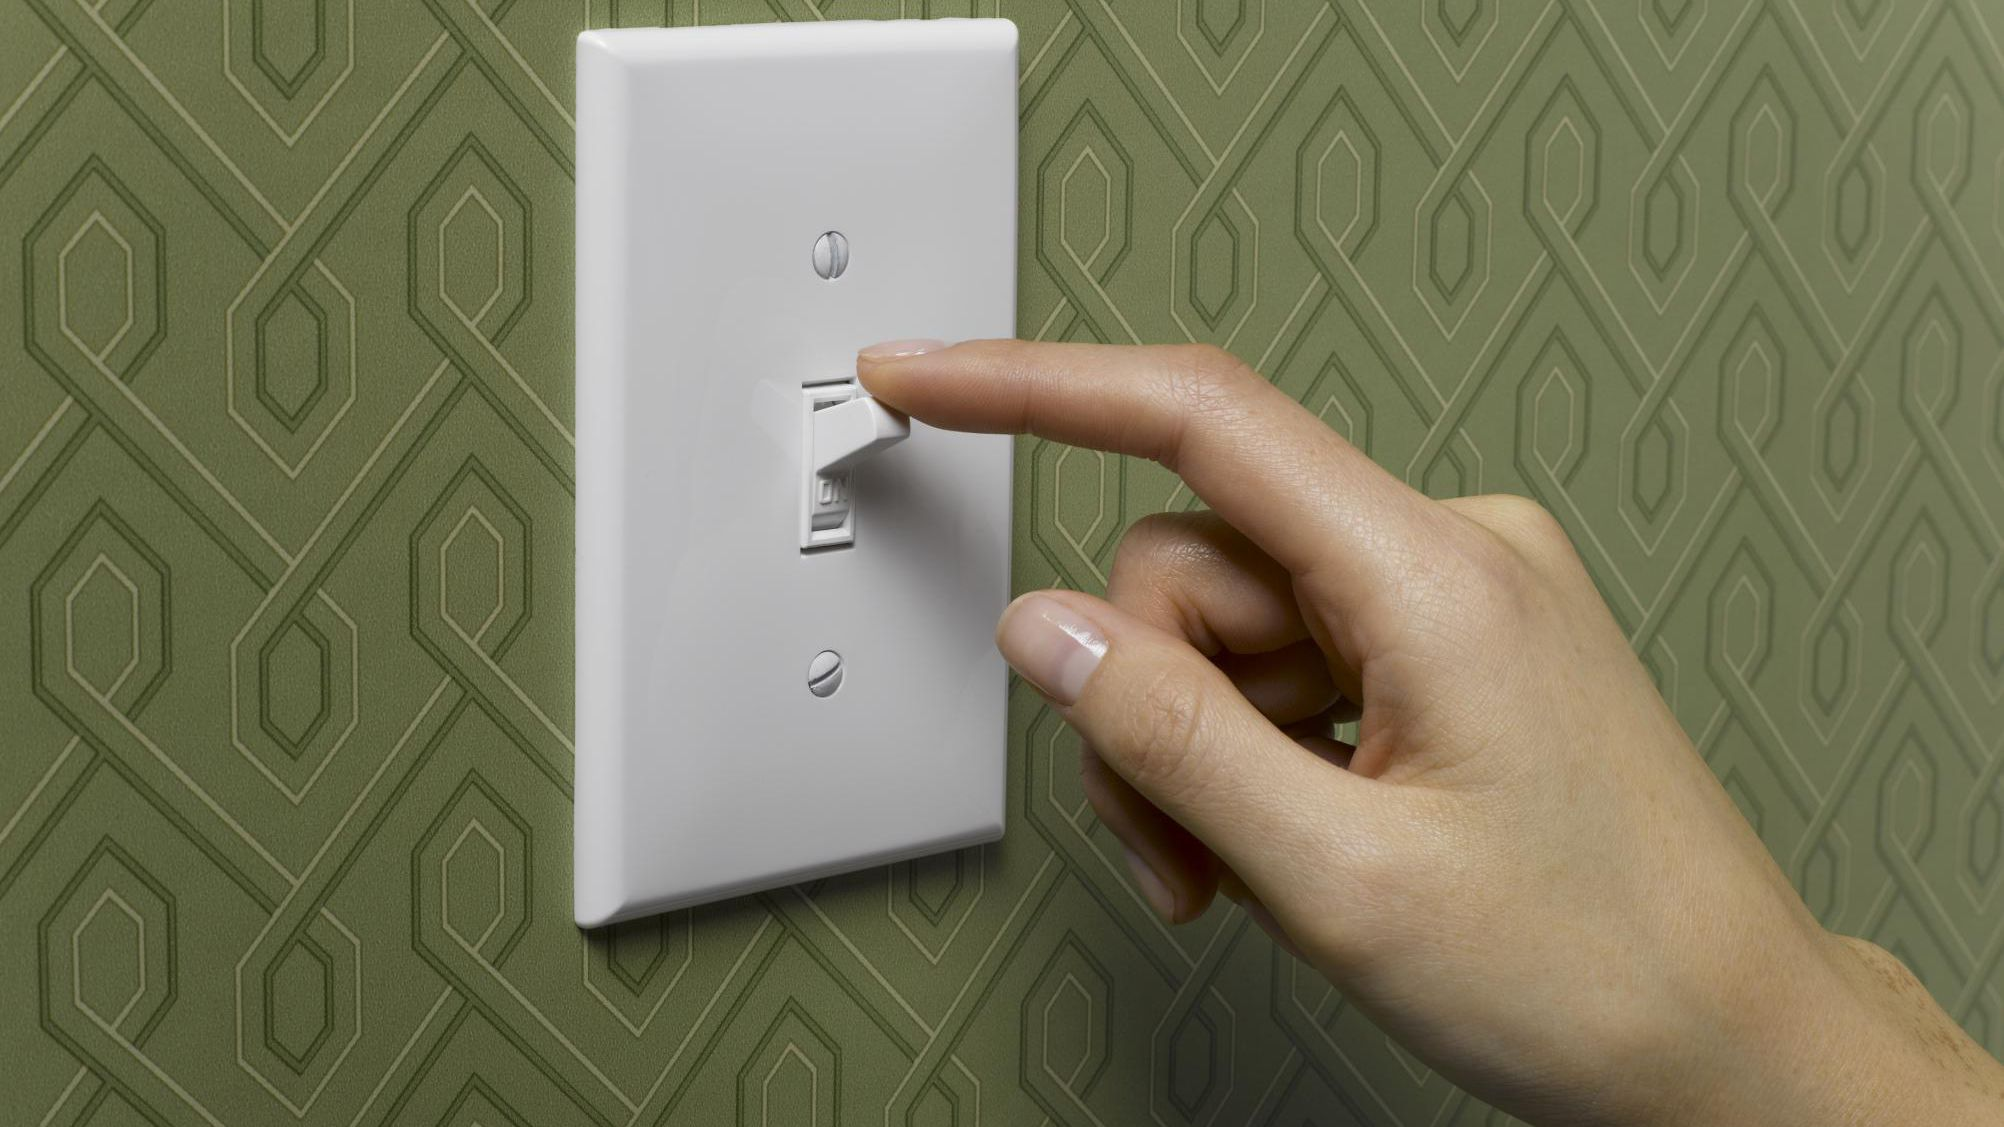 How Does a Light Switch Work?